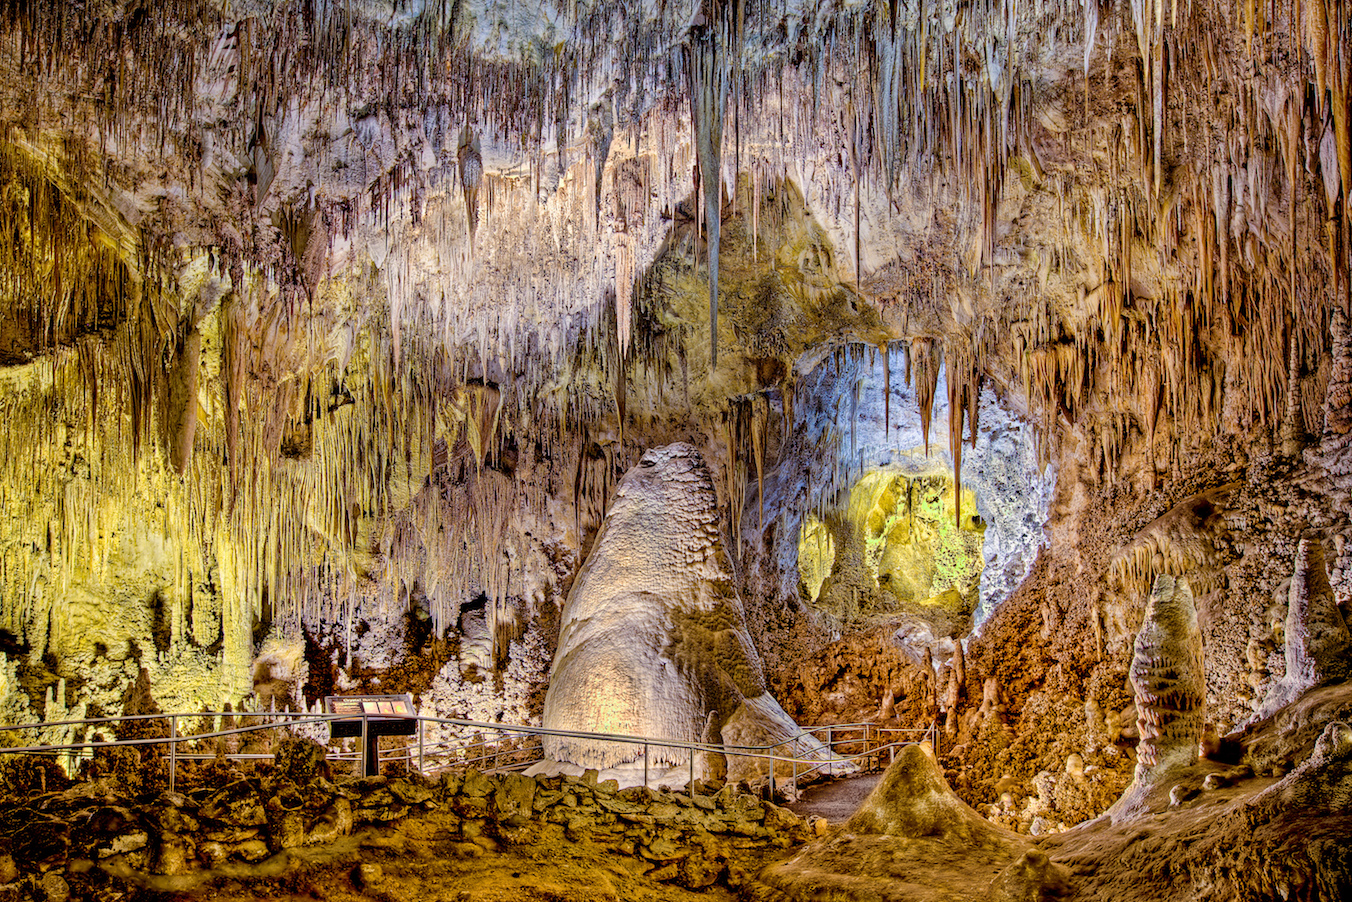 The-hidden-secrets-of-the-Carlsbad-Caverns-in-New-Mexico.jpg